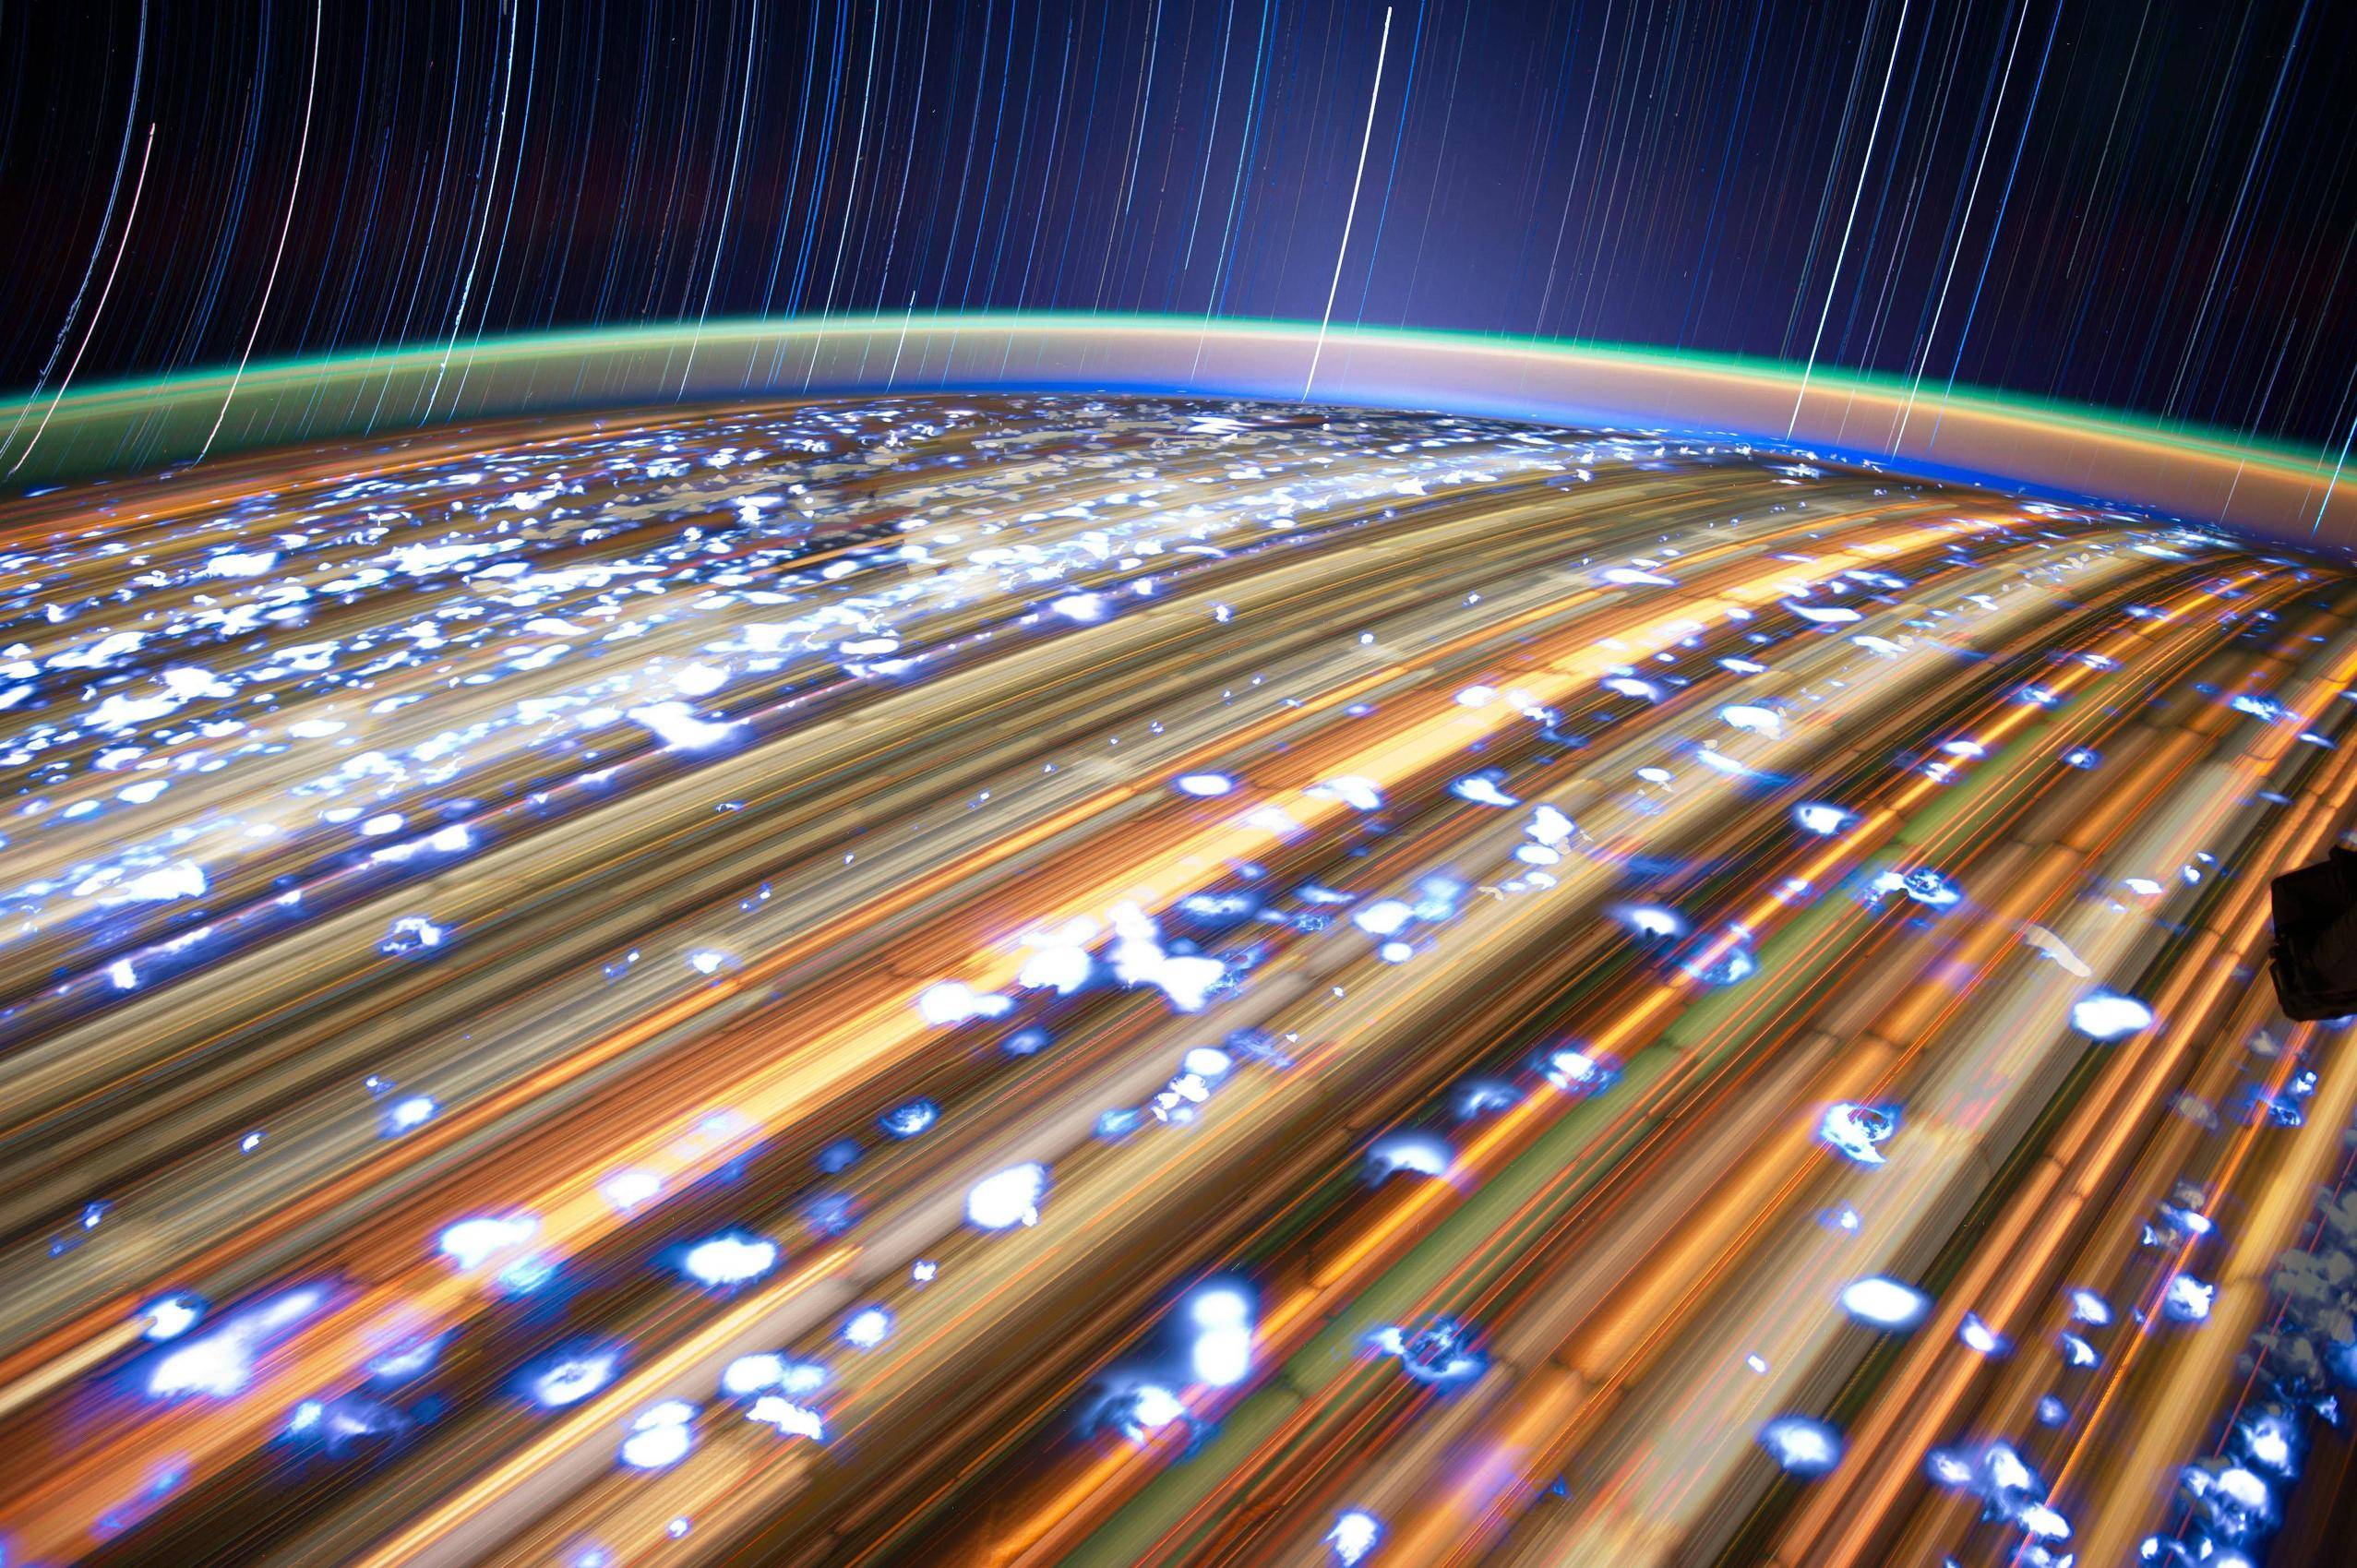 time lapse photography from space